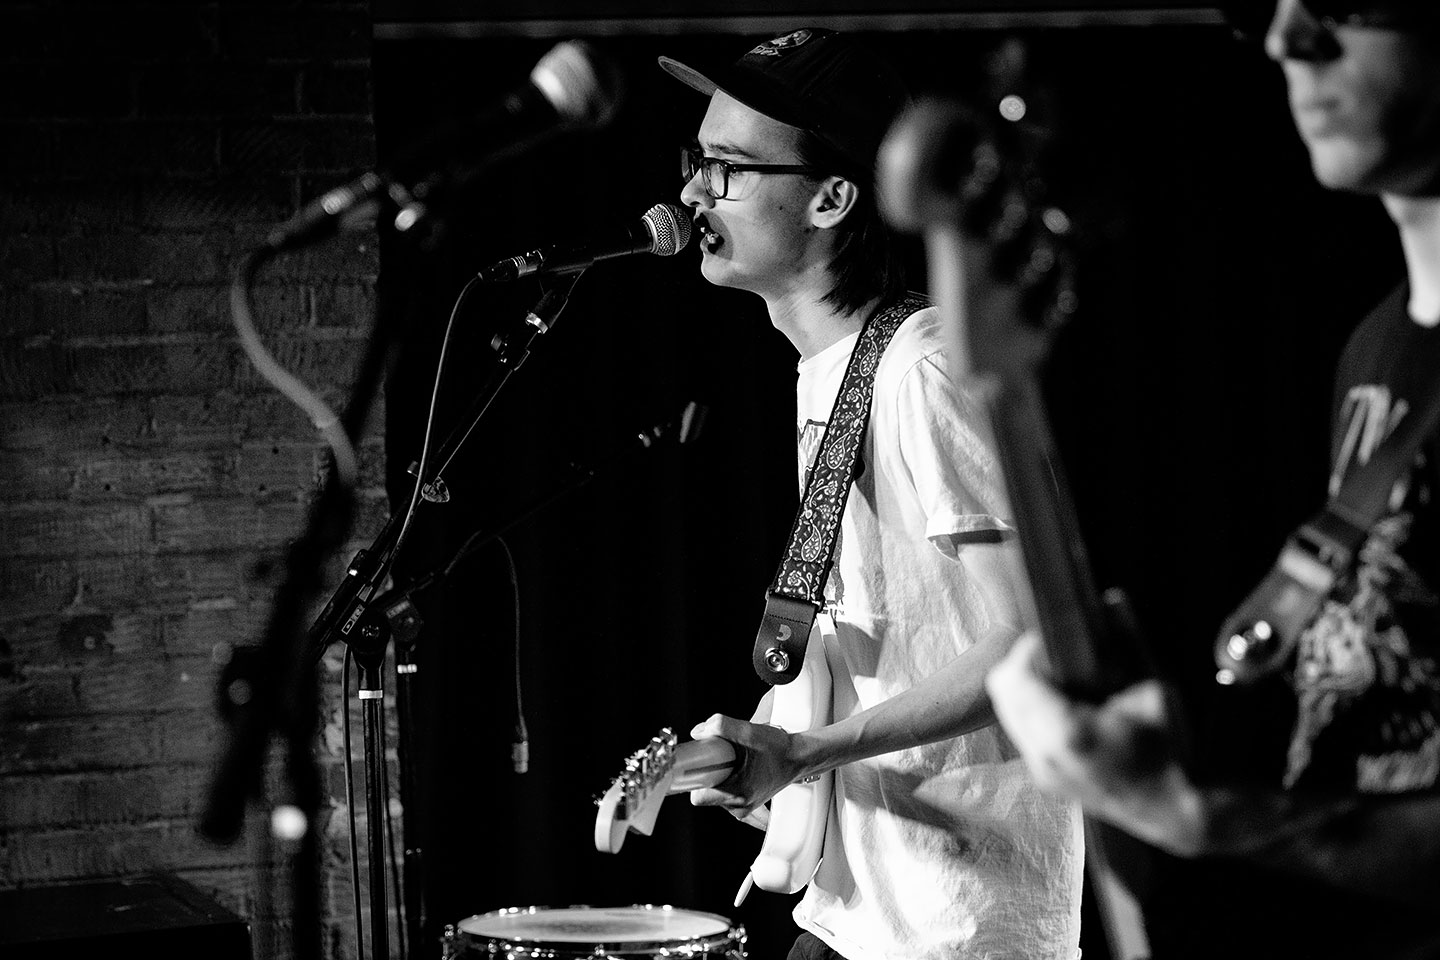 Denver Concert Photos: One Flew West, OptycNerd and Holdfast at Oskar Blues Black Buzzard